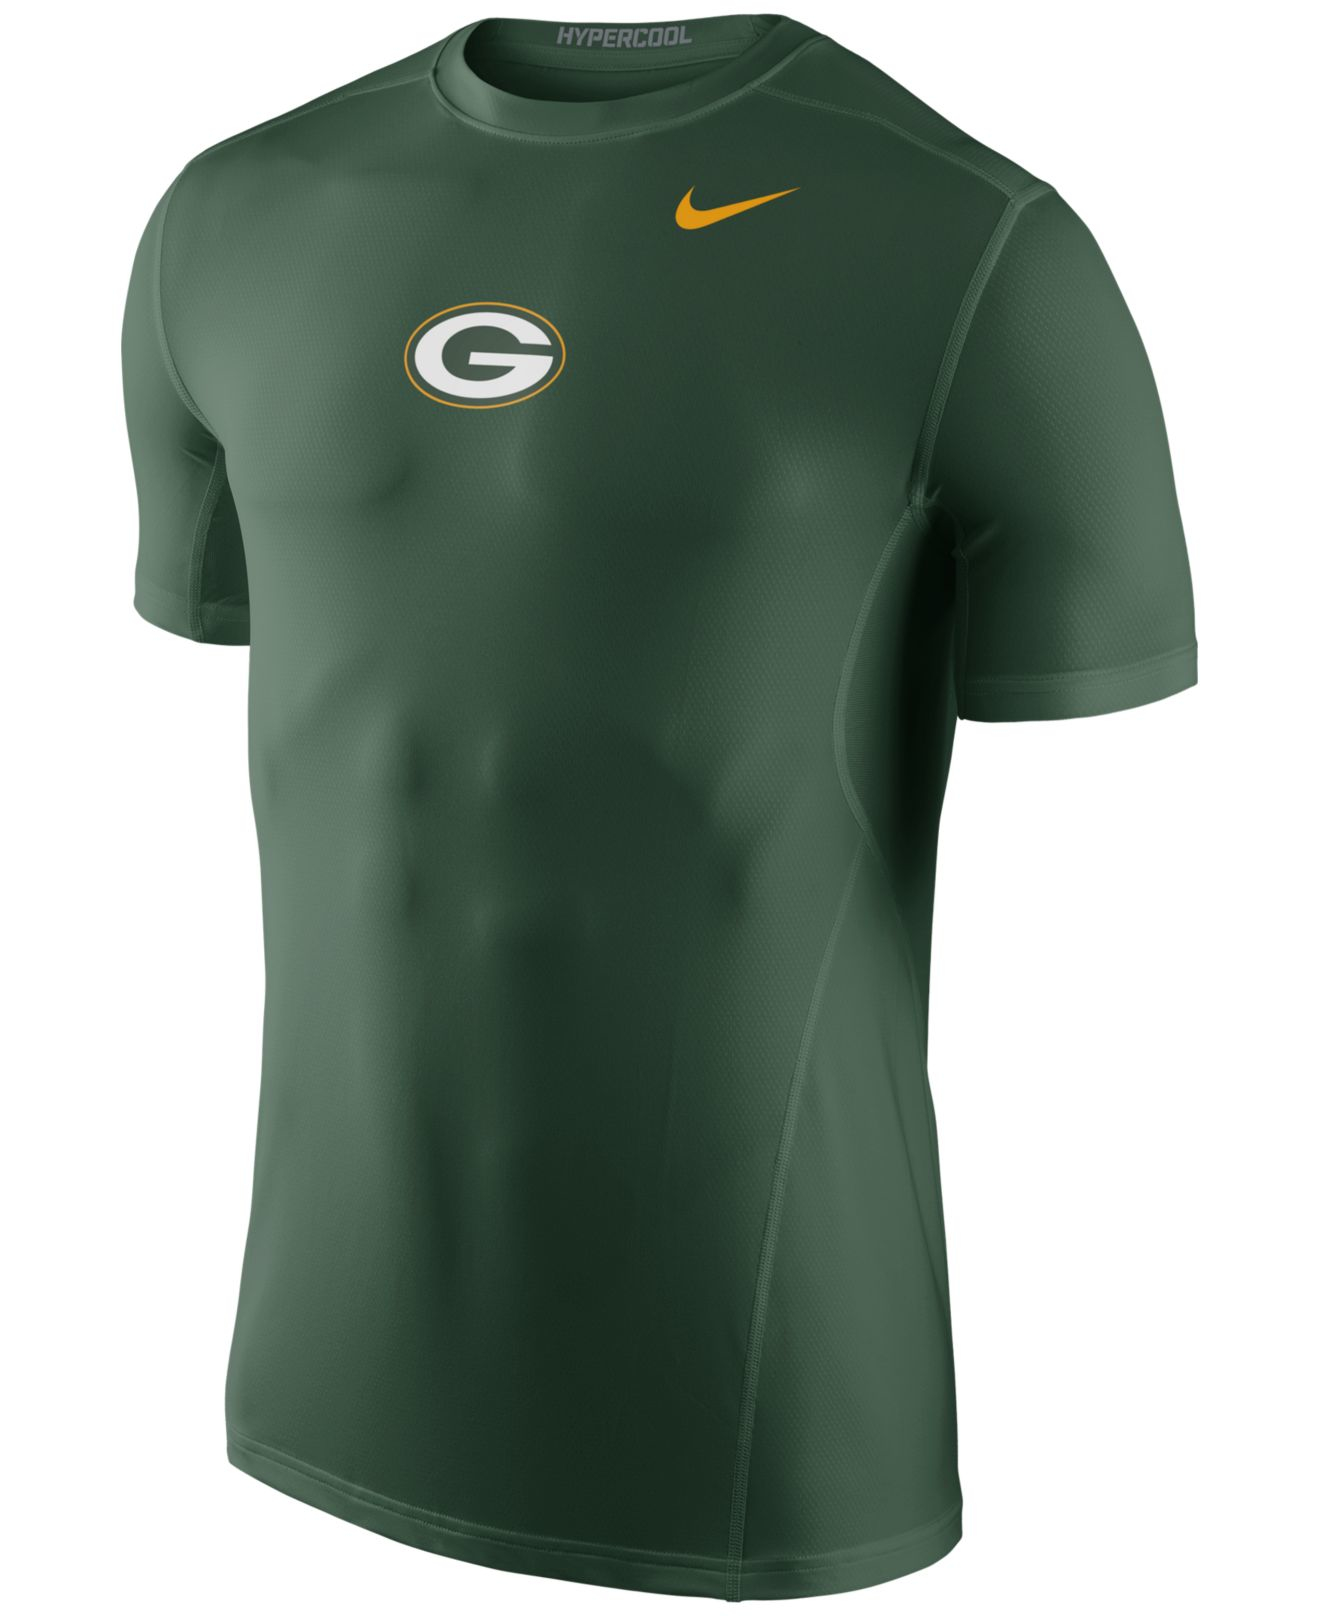 e4e19674f8c ... NFL BARBECUE TAILGATING GEAR Nike Mens Green Bay Packers Hypercool  T-shirt in Green for M 47 Brand ...